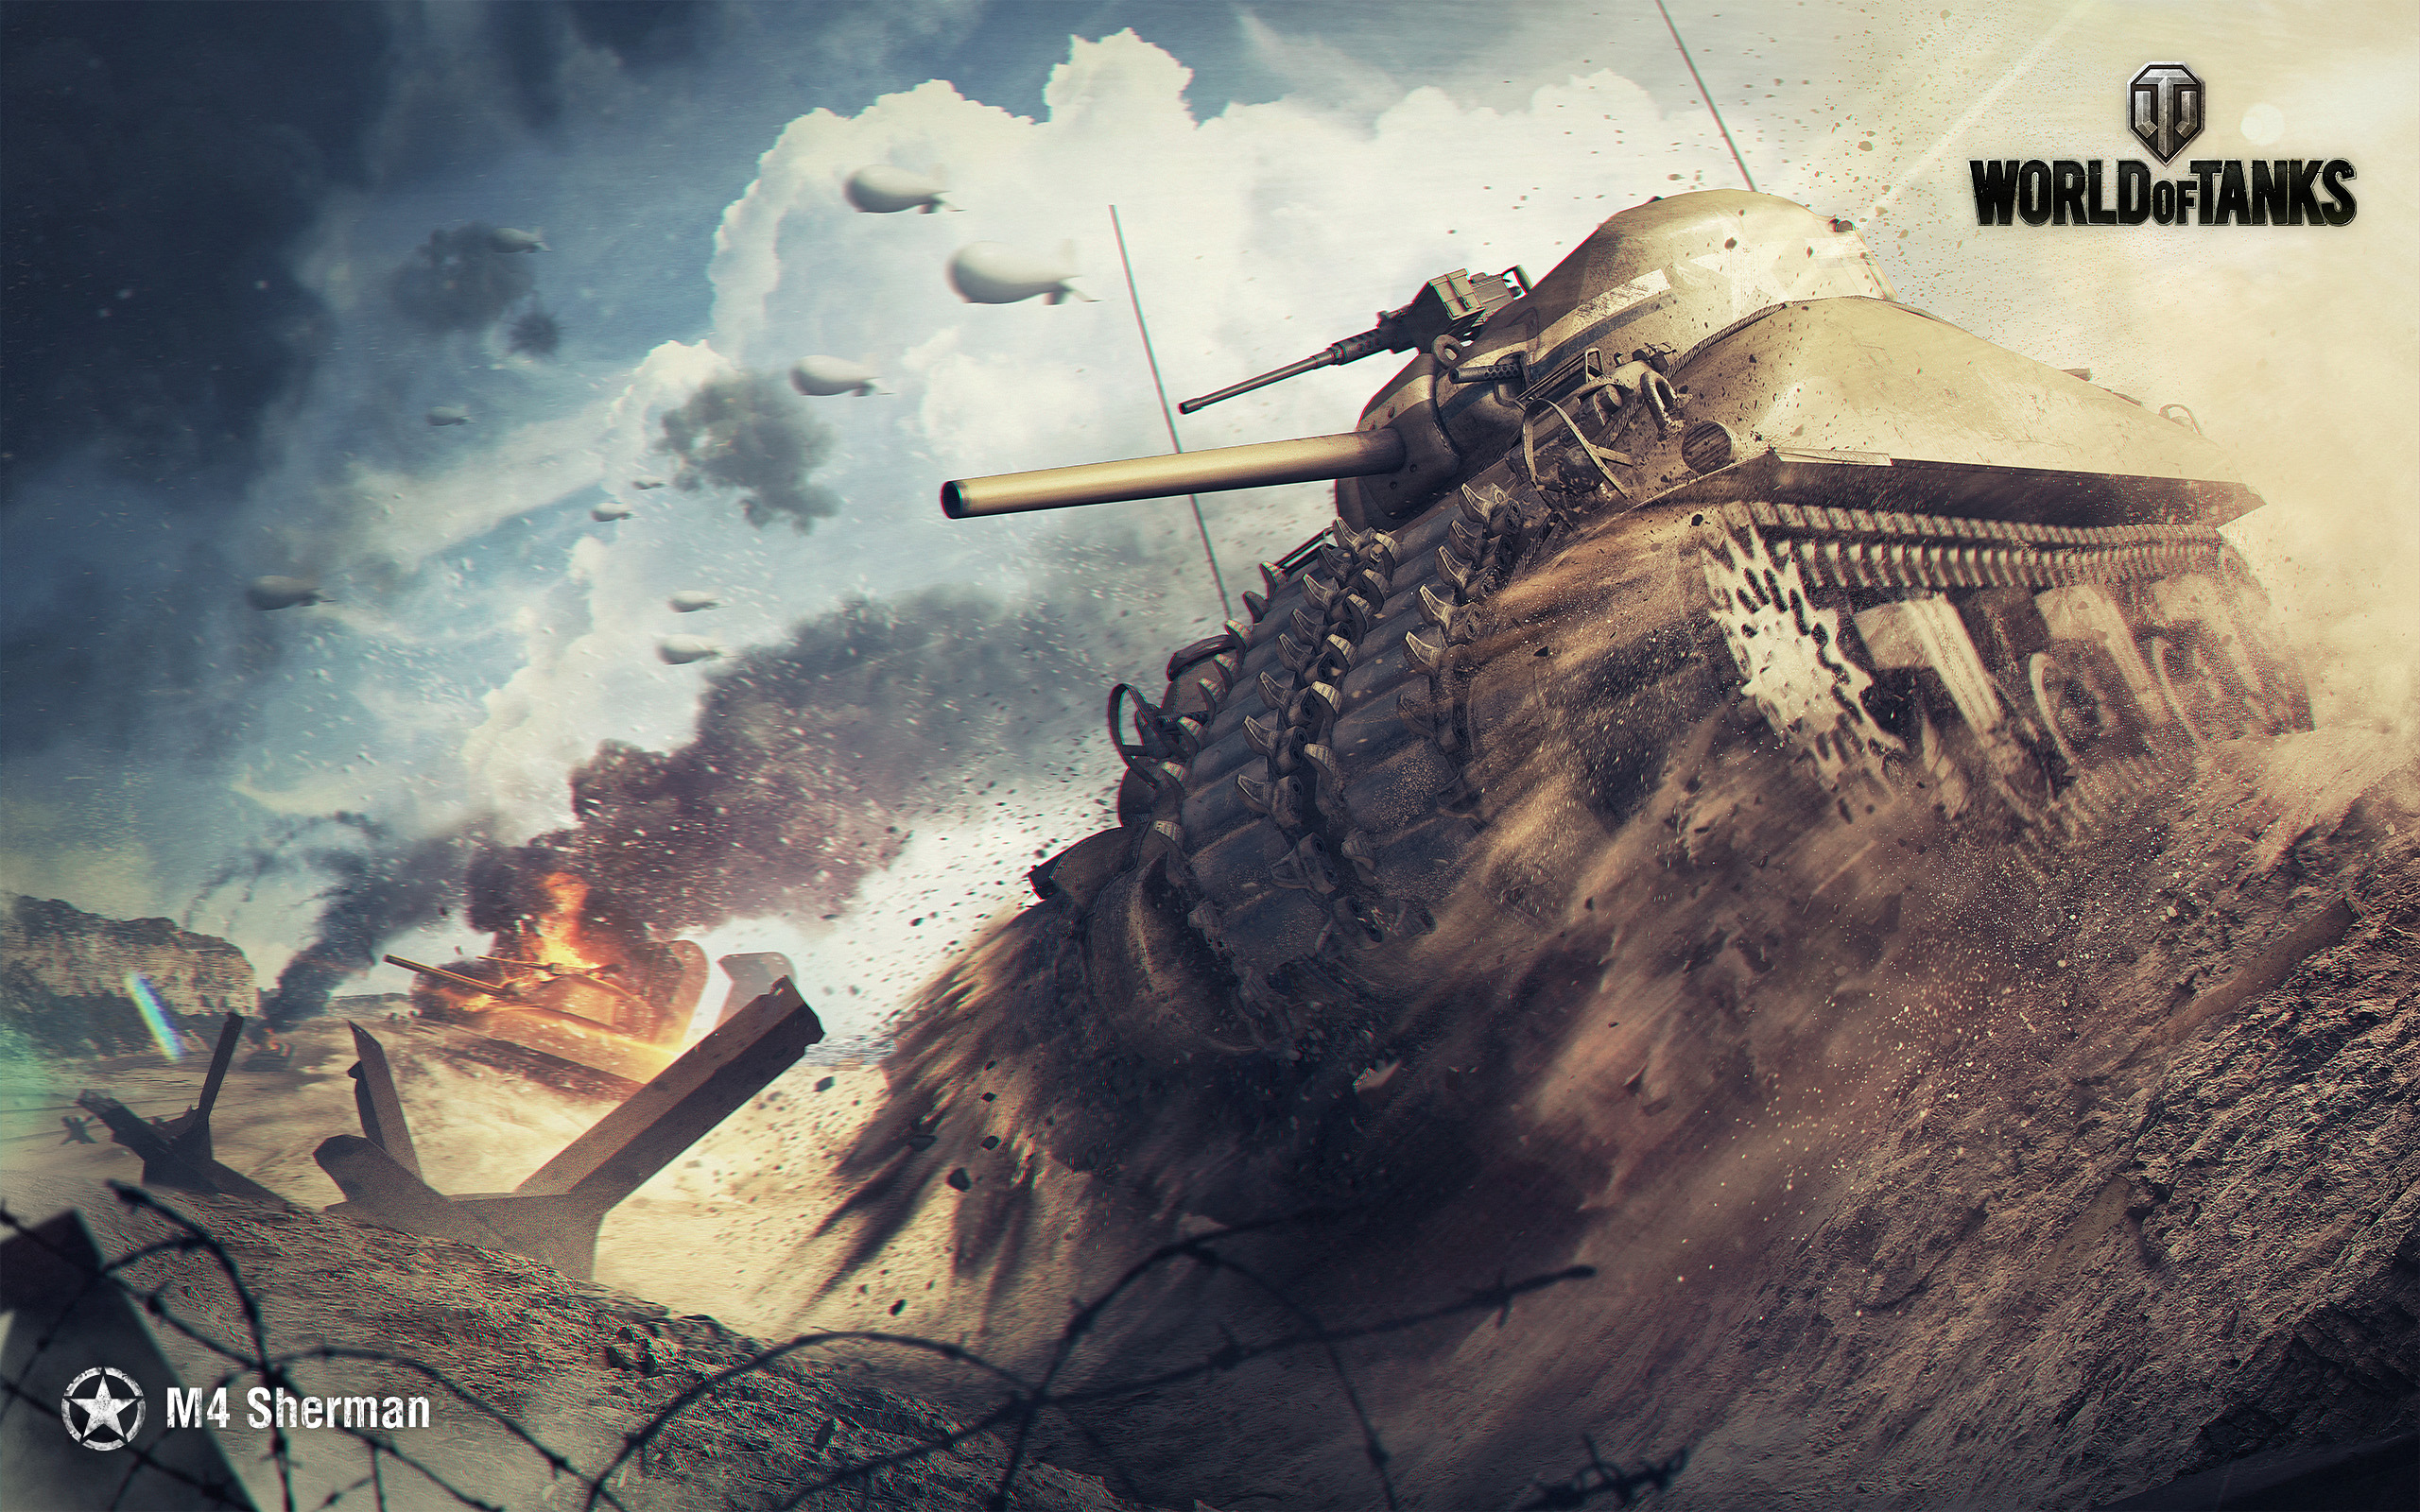 M4 Sherman World of Tanks